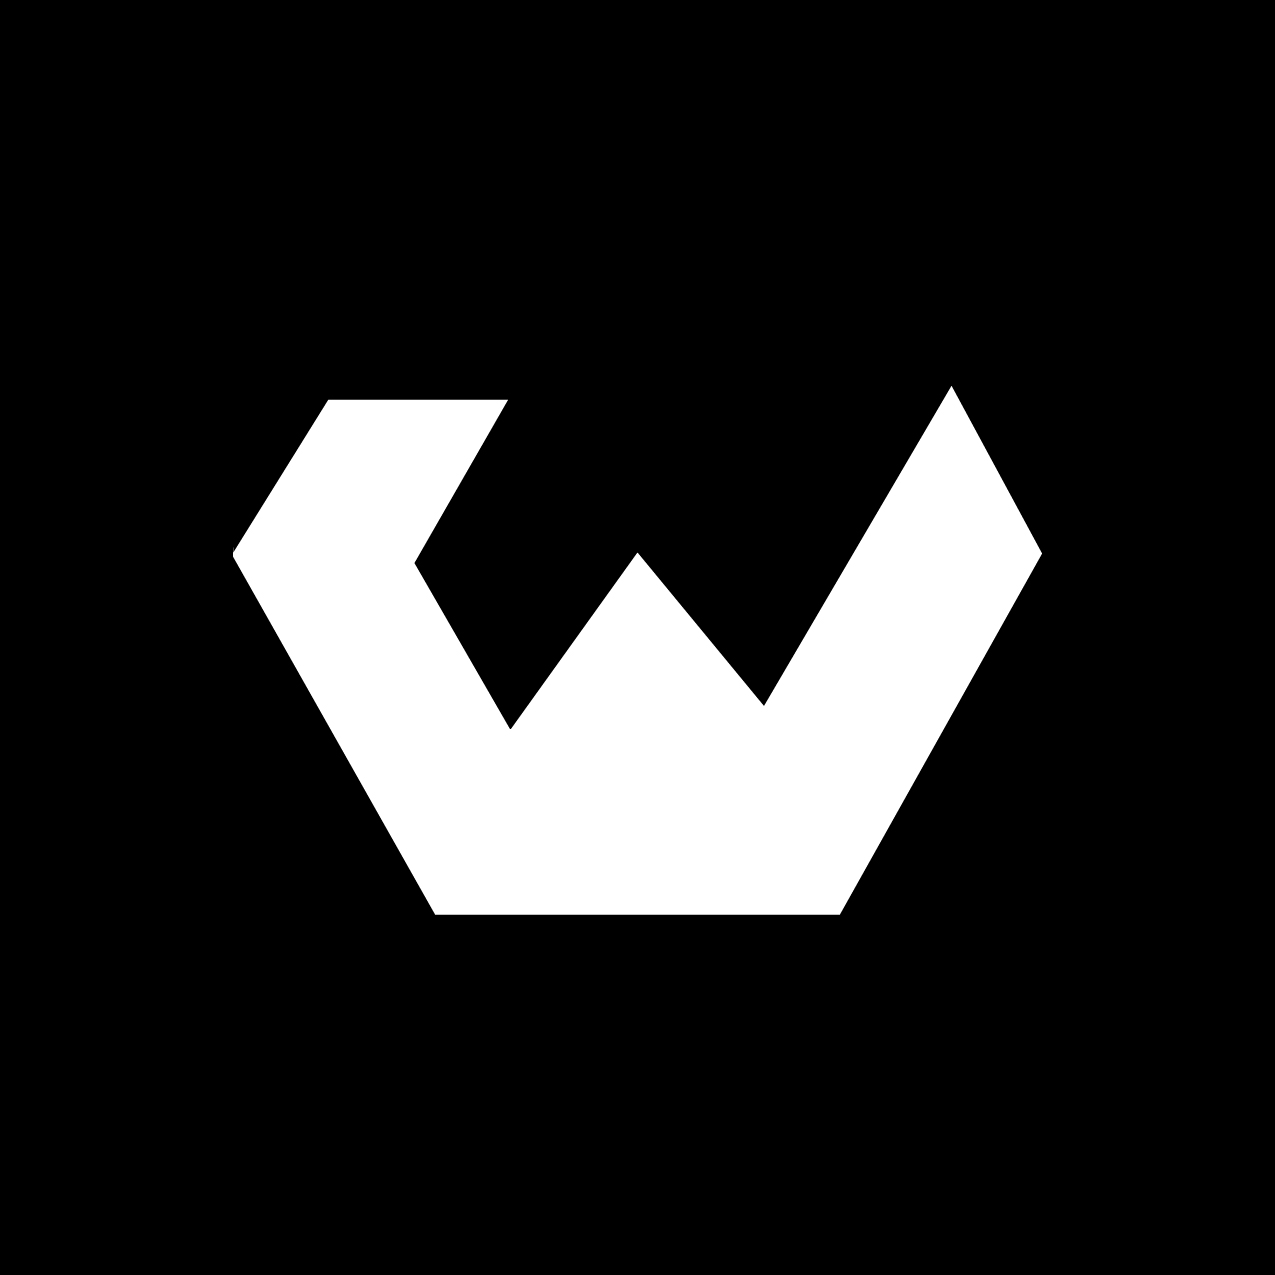 Letter W4 Design by Furia